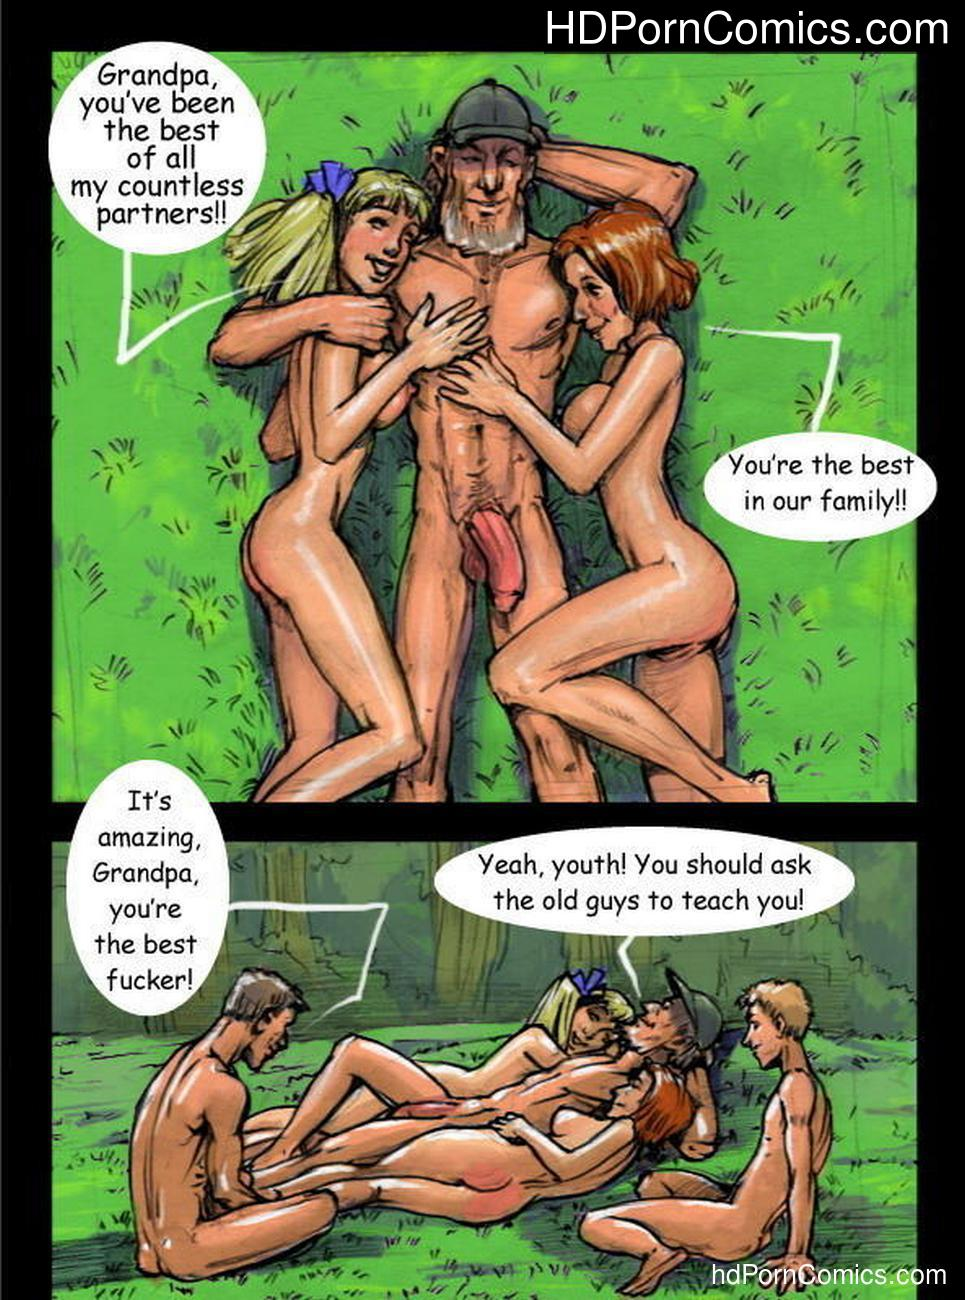 Family Love brother sister porn comic